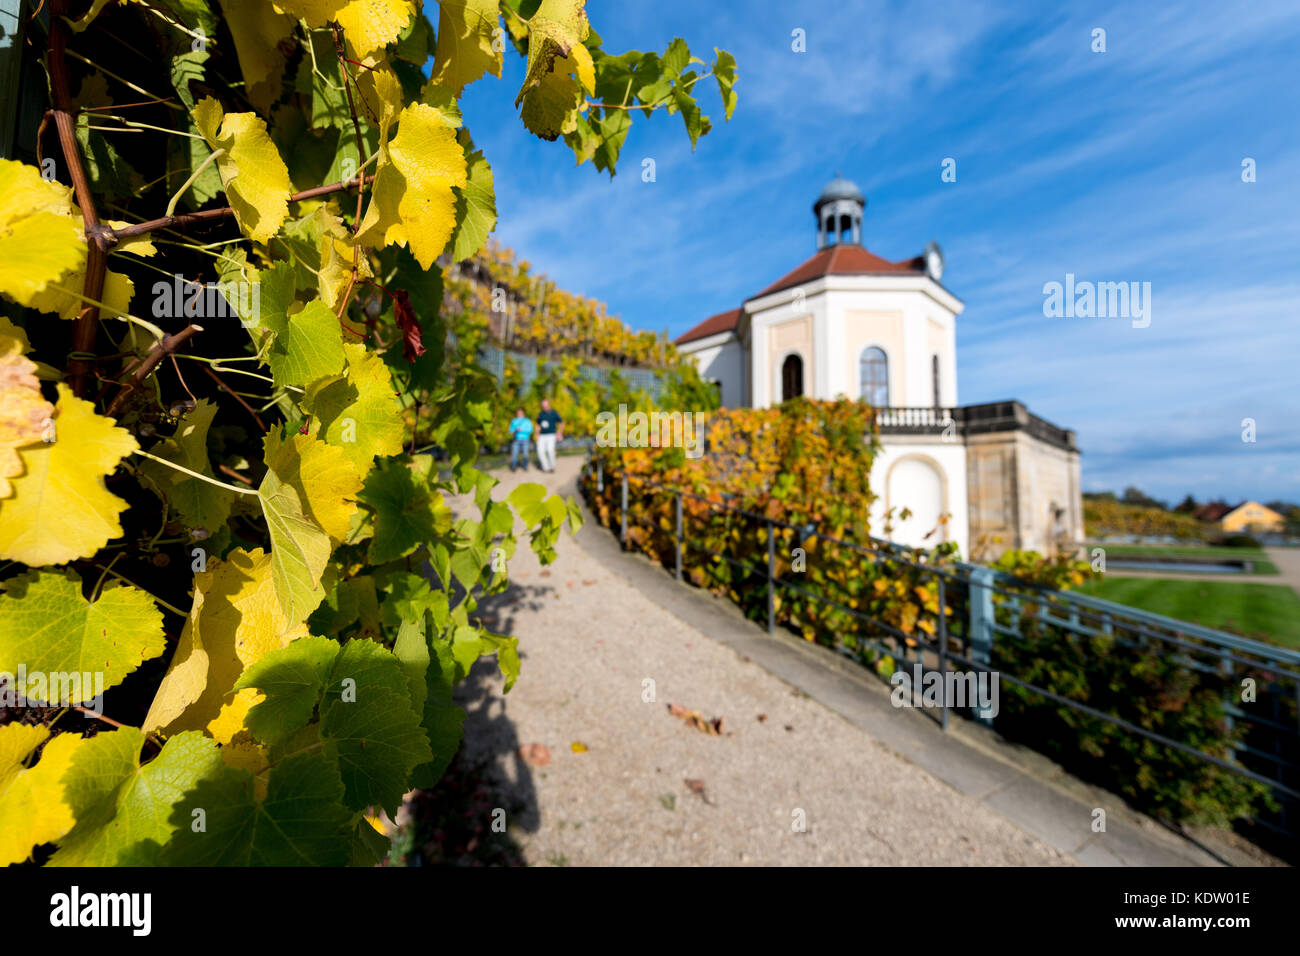 Jacobstein, Germany. 12th Oct, 2017. Blue skies over a vineyard in Jacobstein, Germany, 12 October 2017. Credit: Stock Photo